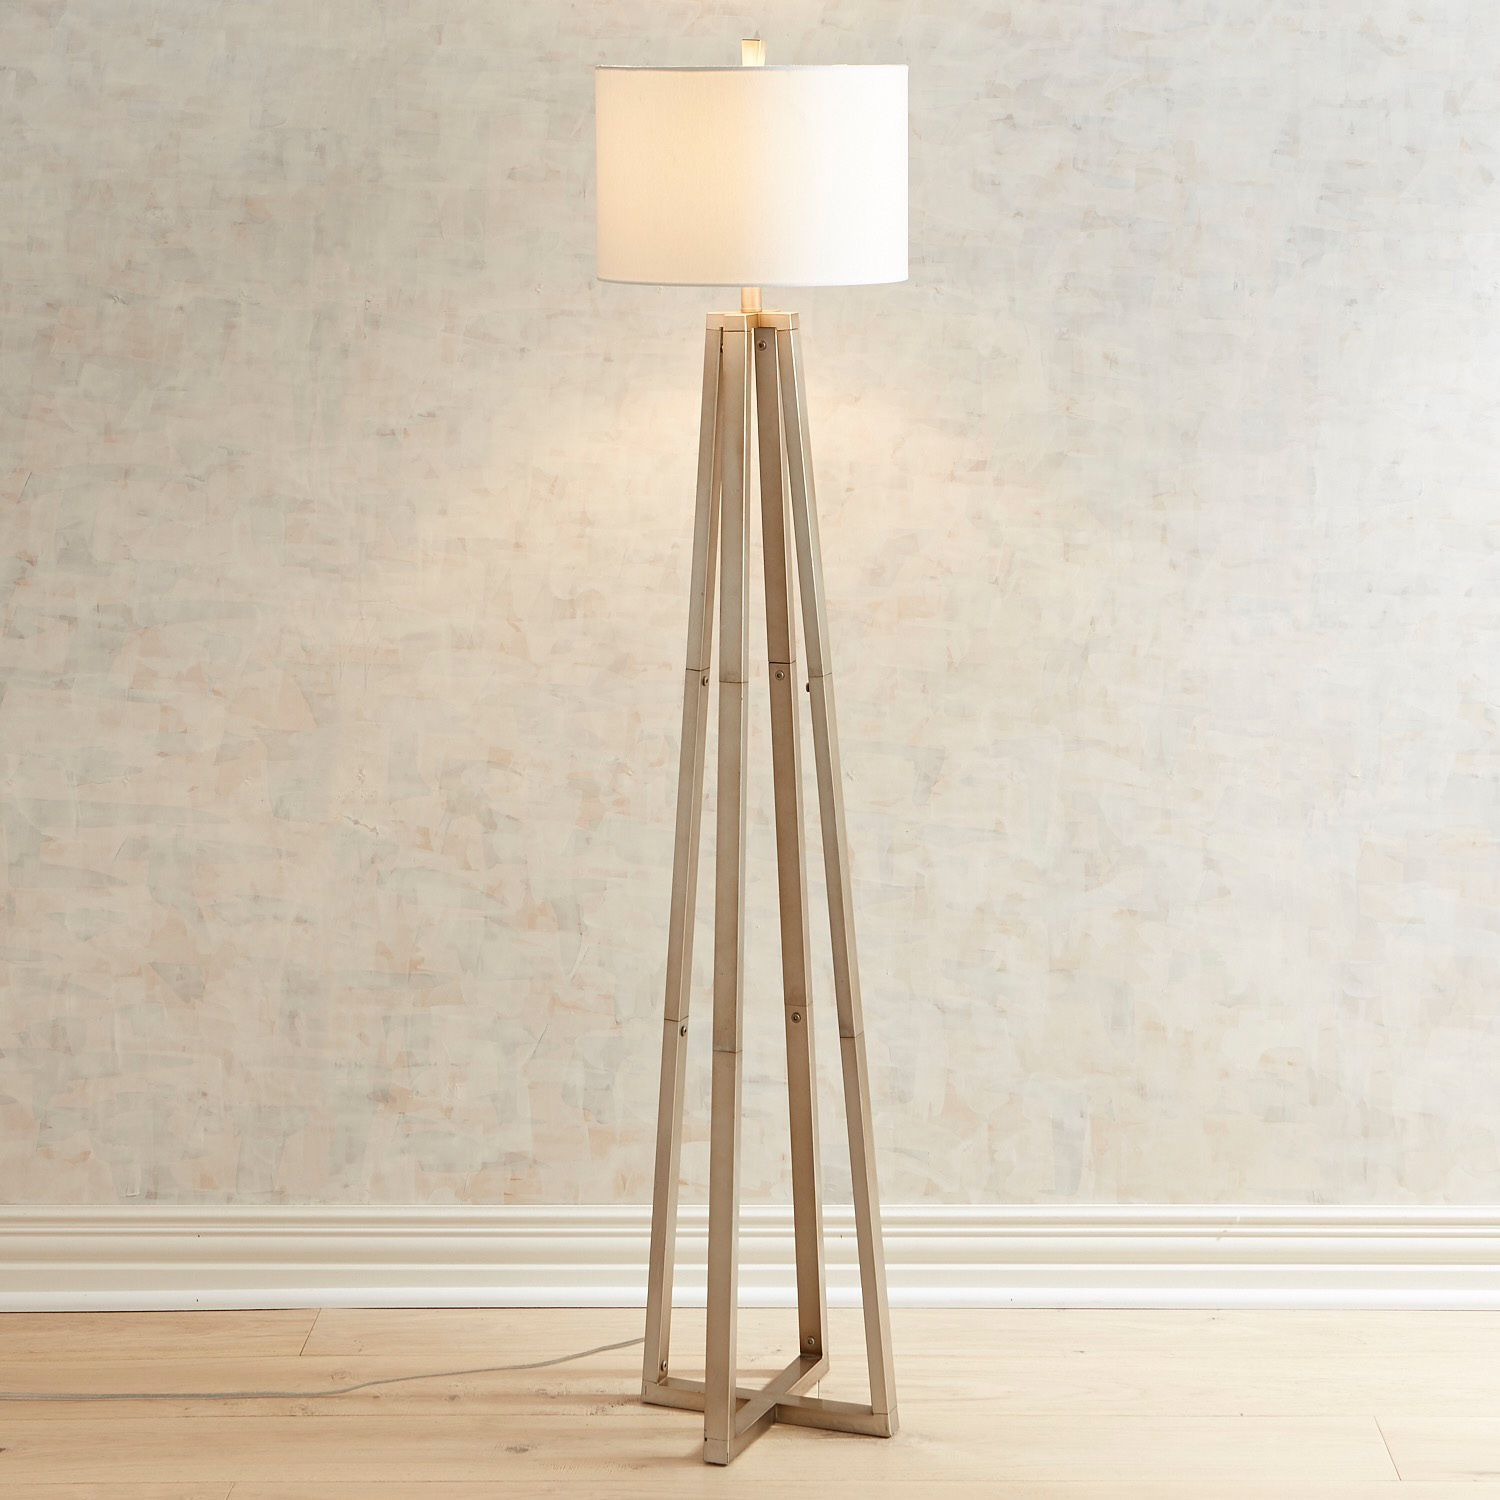 Champagne Noe Metal Floor Lamp Pier 1 Imports Farmhouselamps